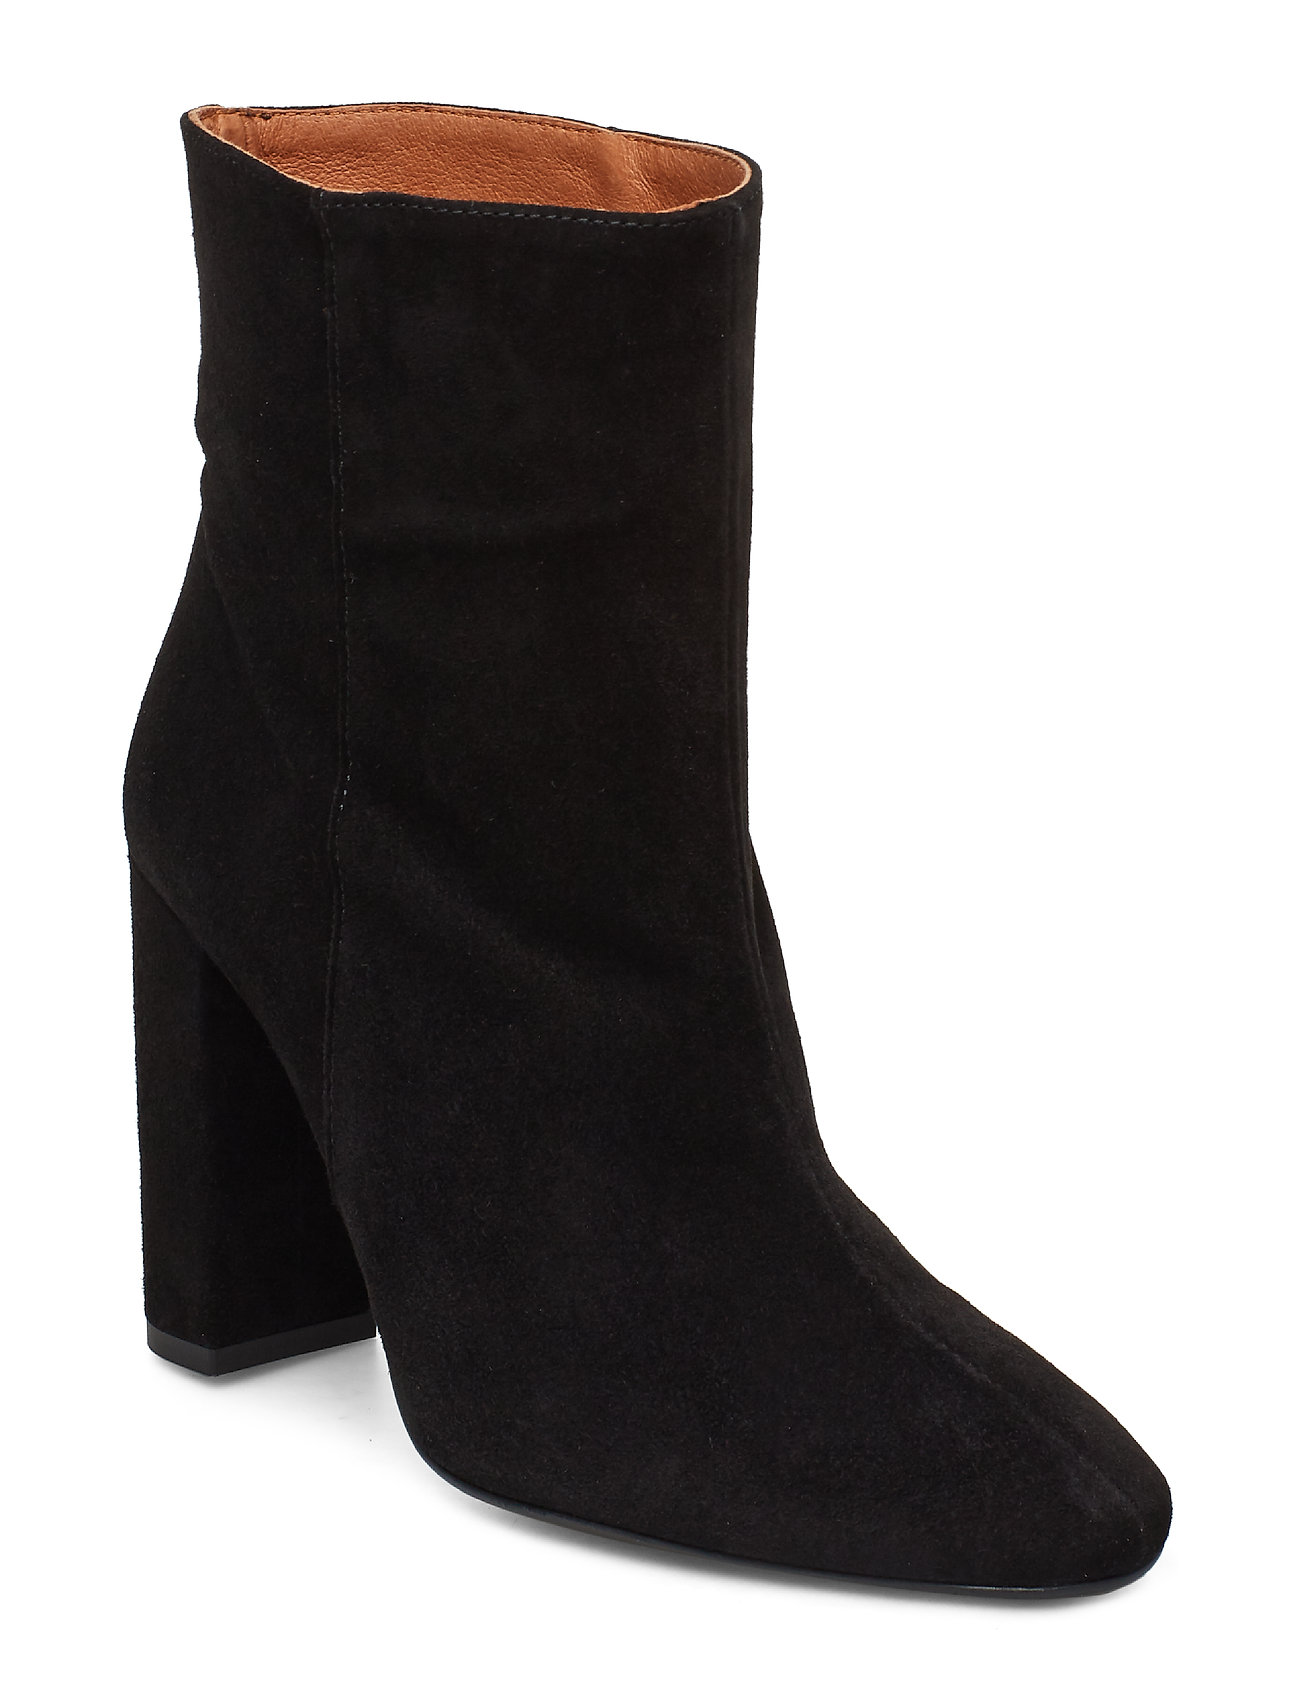 Image of Joan Suede Black Shoes Boots Ankle Boots Ankle Boot - Heel Sort Henry Kole (3406234429)